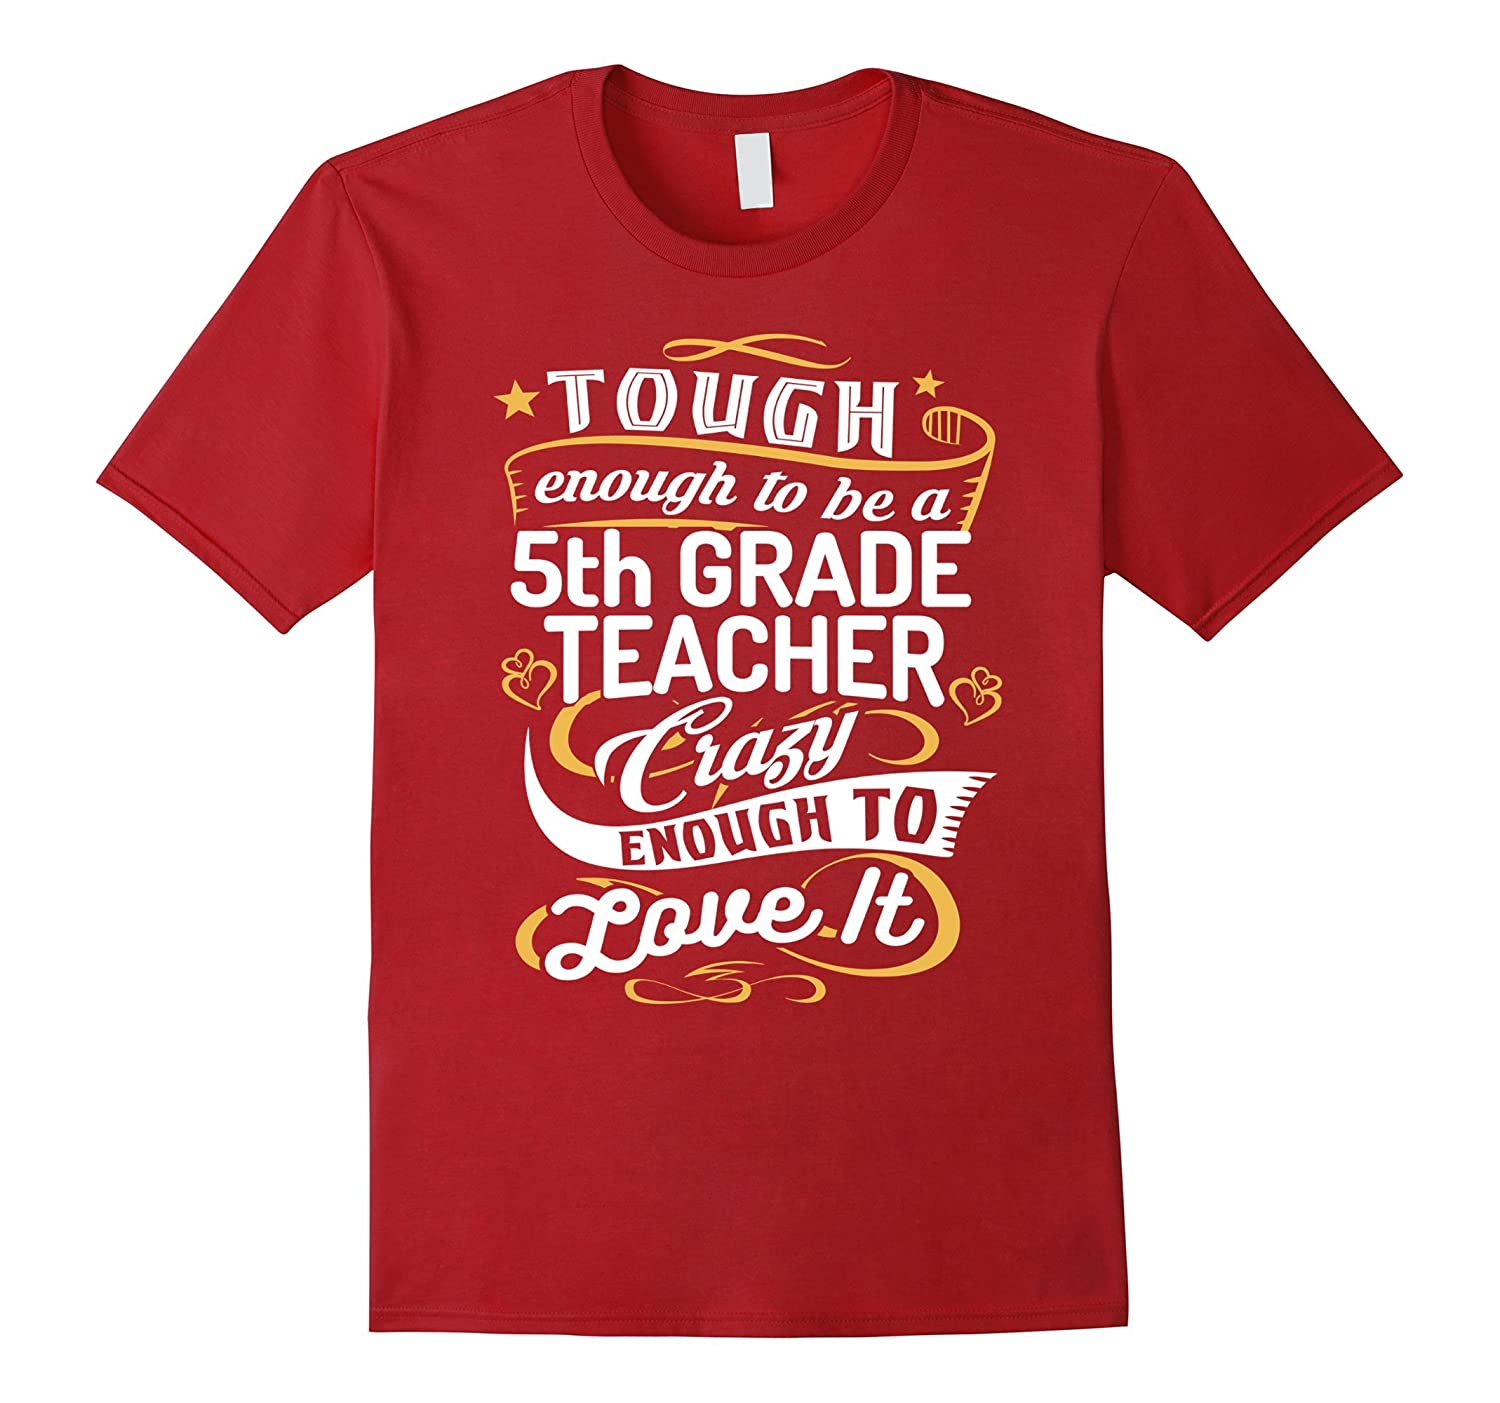 5th Grade Teacher Shirt Tough to be a Fifth Grade Teacher-CL